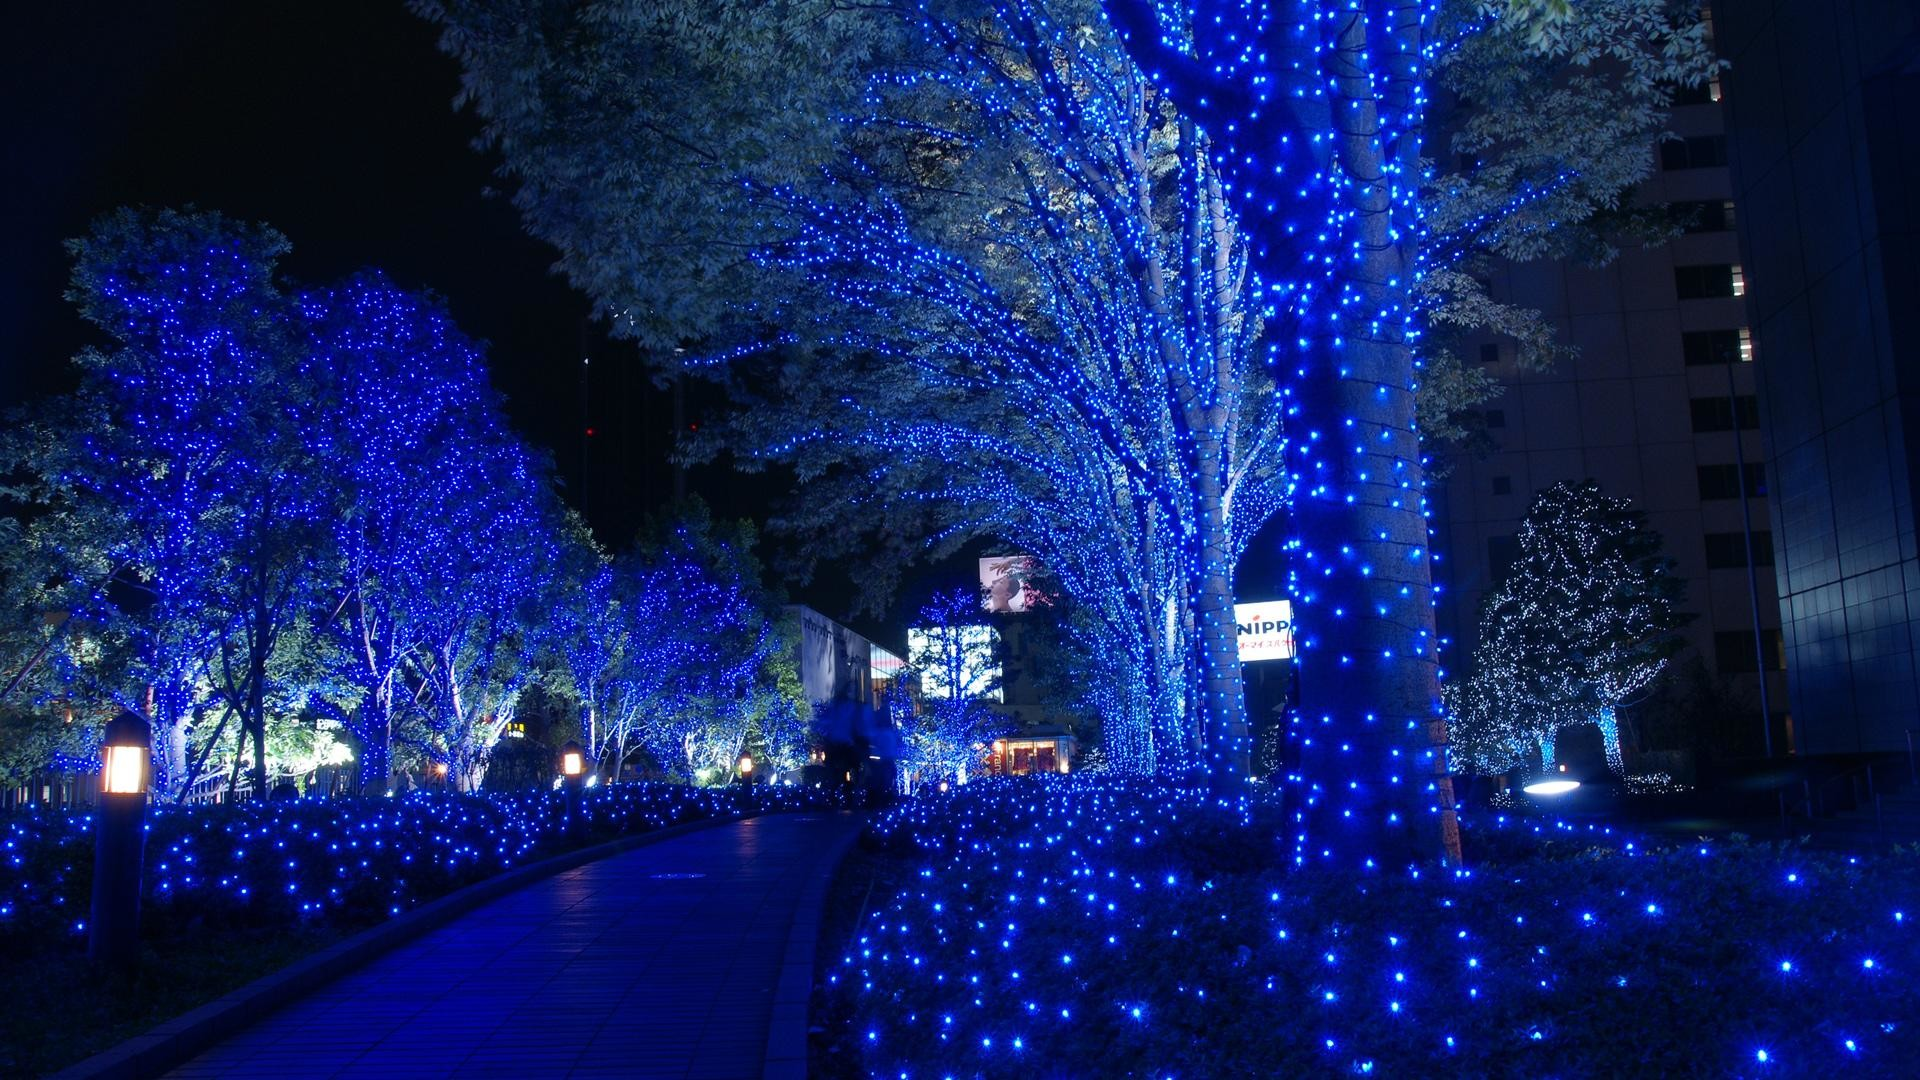 Great Christmas Lights Wallpaper Free Download Wallpapers   Download Free  Cool Wallpapers For PC Download Free